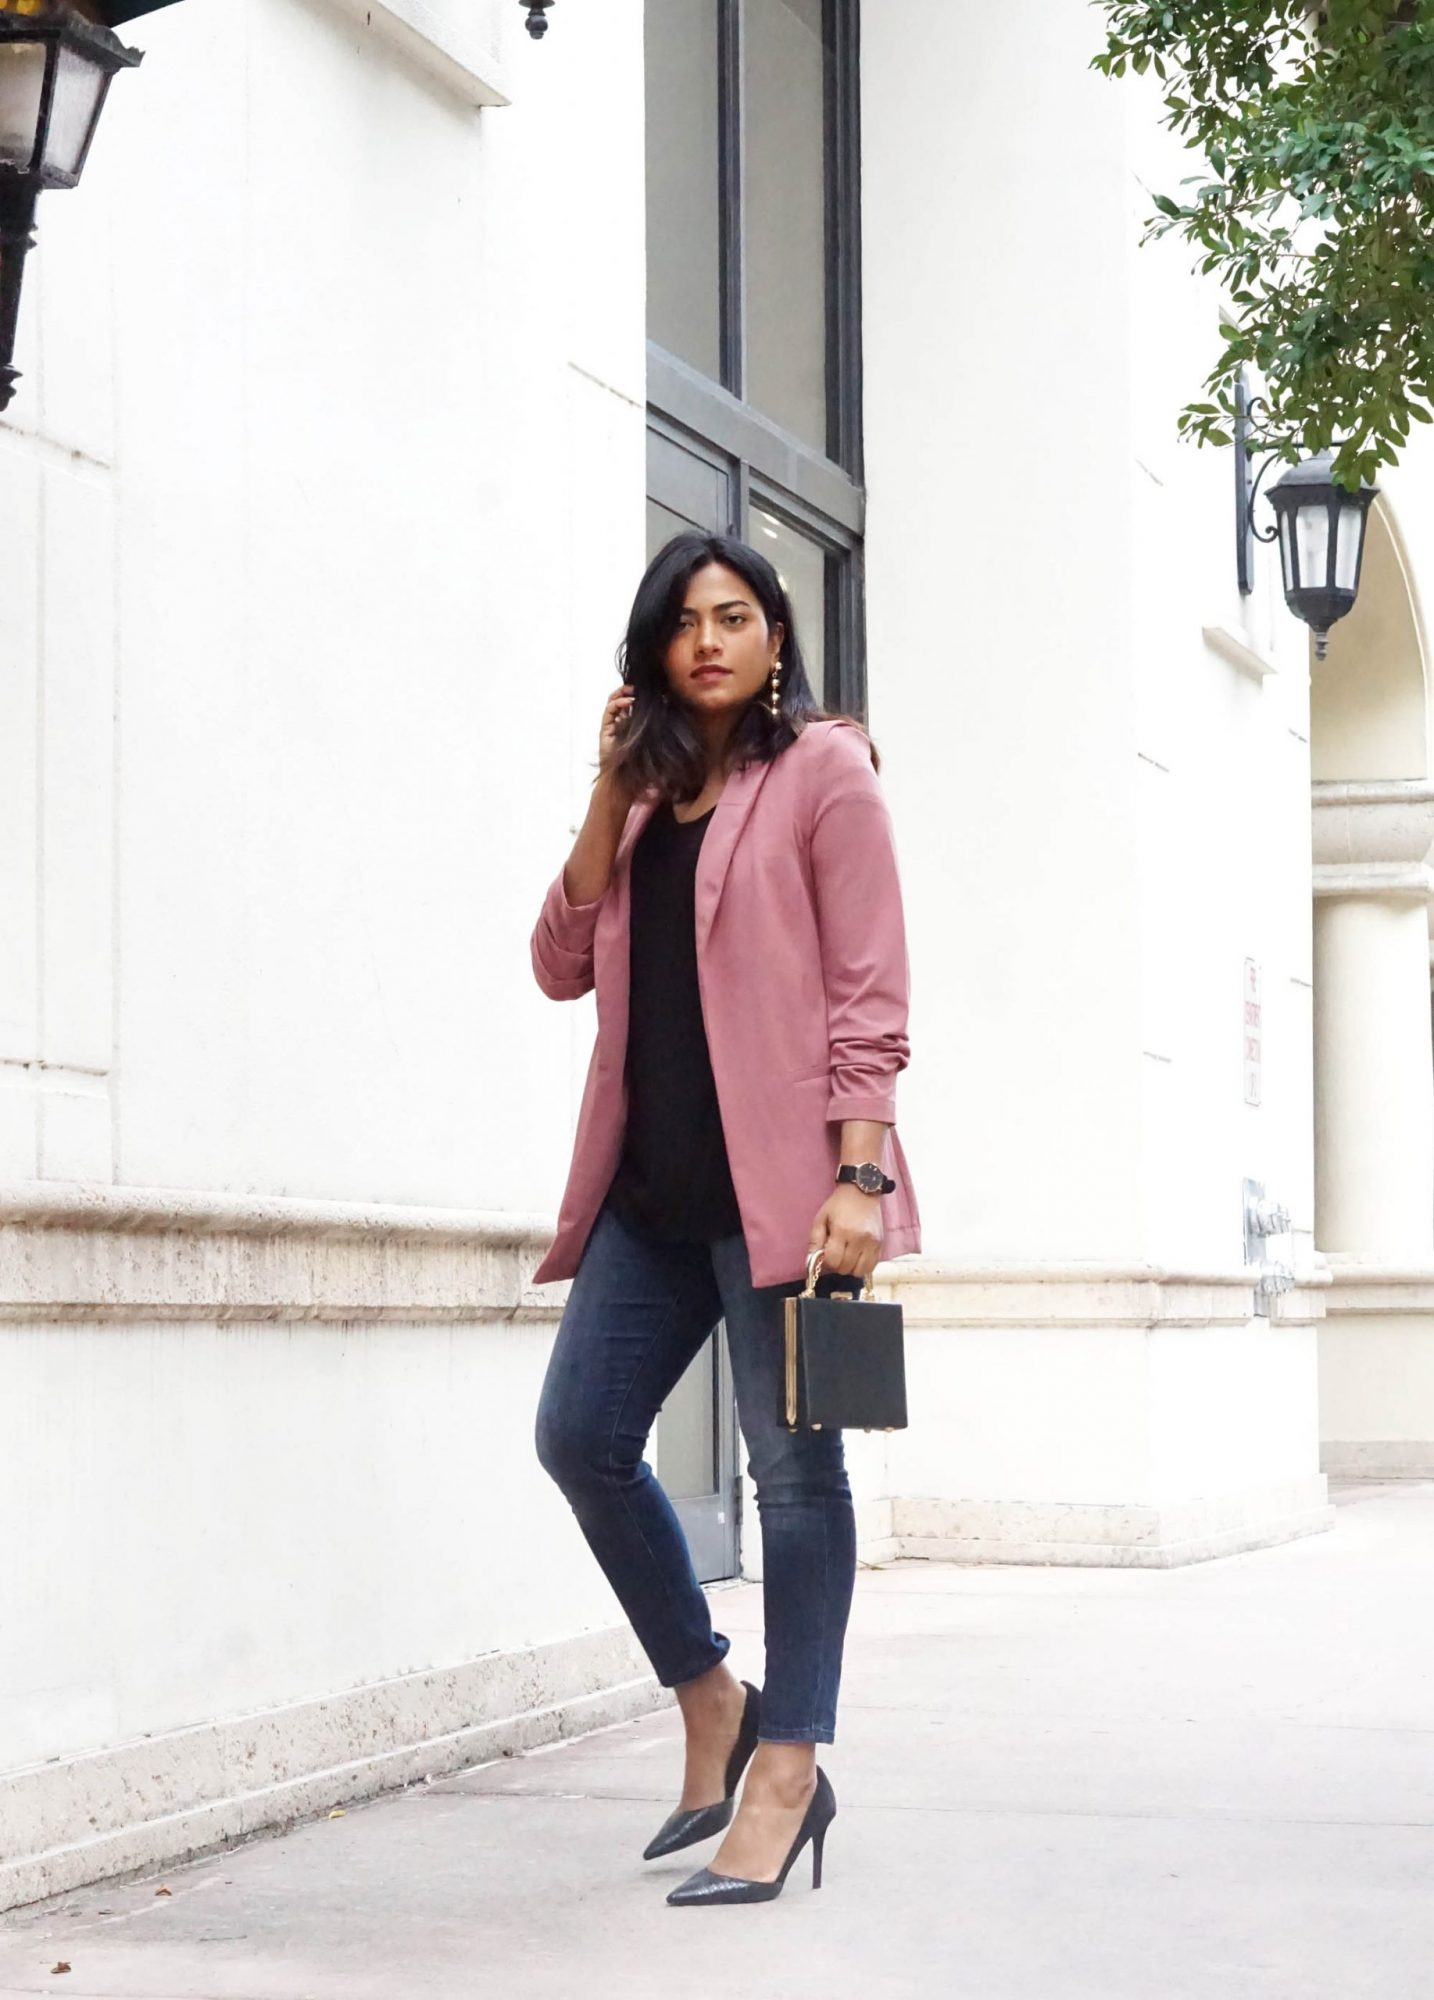 Top Miami Blogger Afroza Khan Chic Stylista